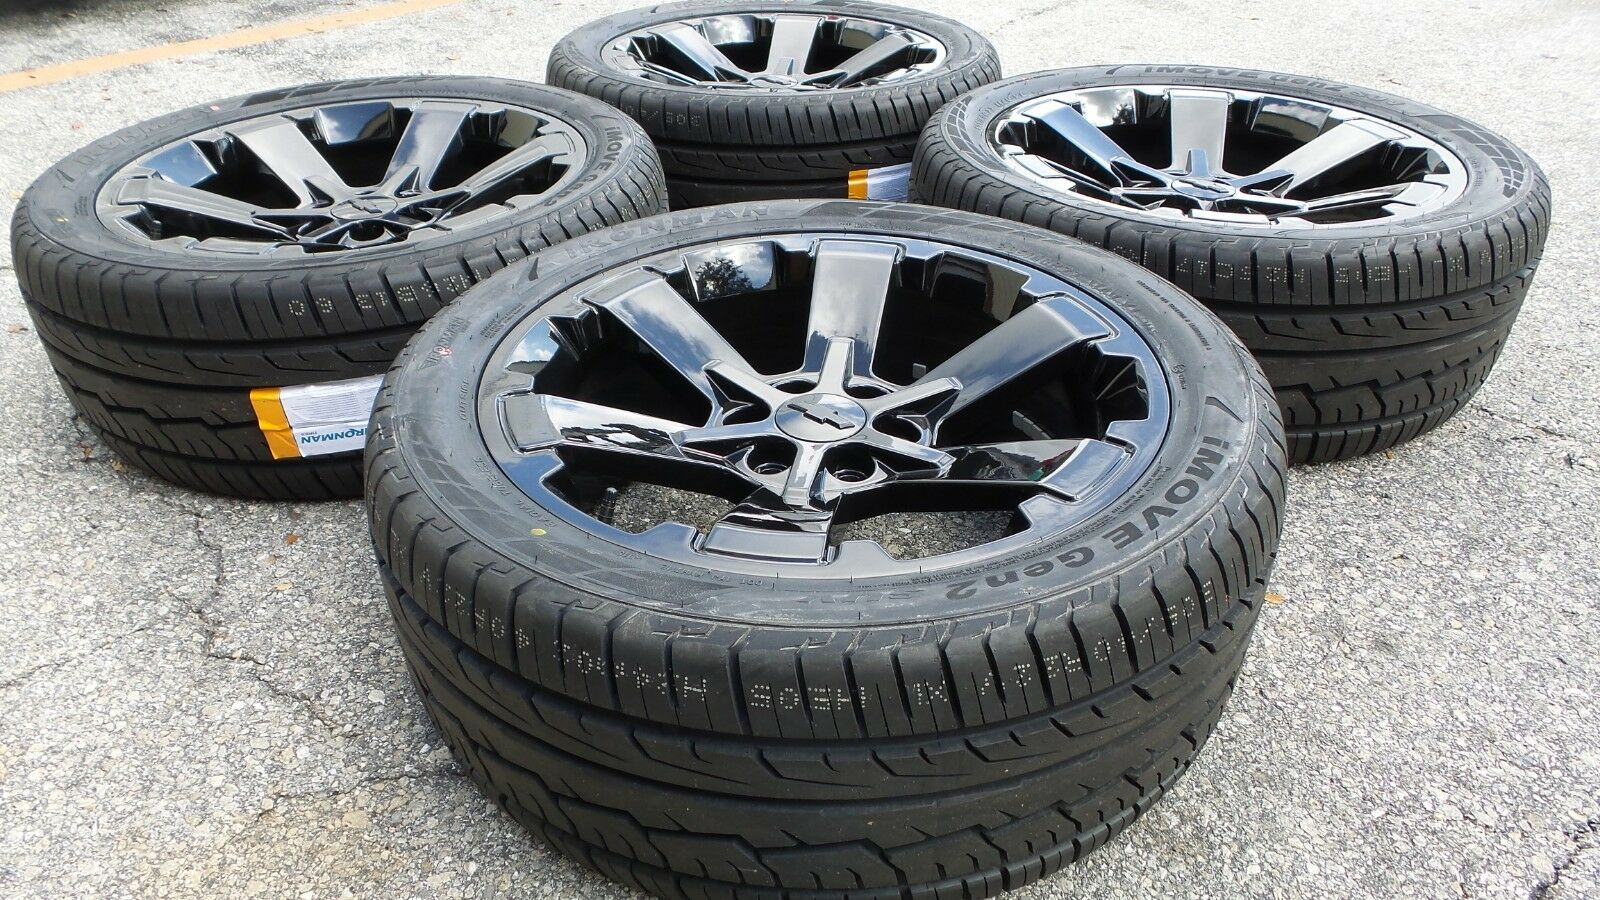 22 Black Tahoe Silverado Wheels Rims Tires Rally Midnight Suburban 5662 Ck162 Ebay